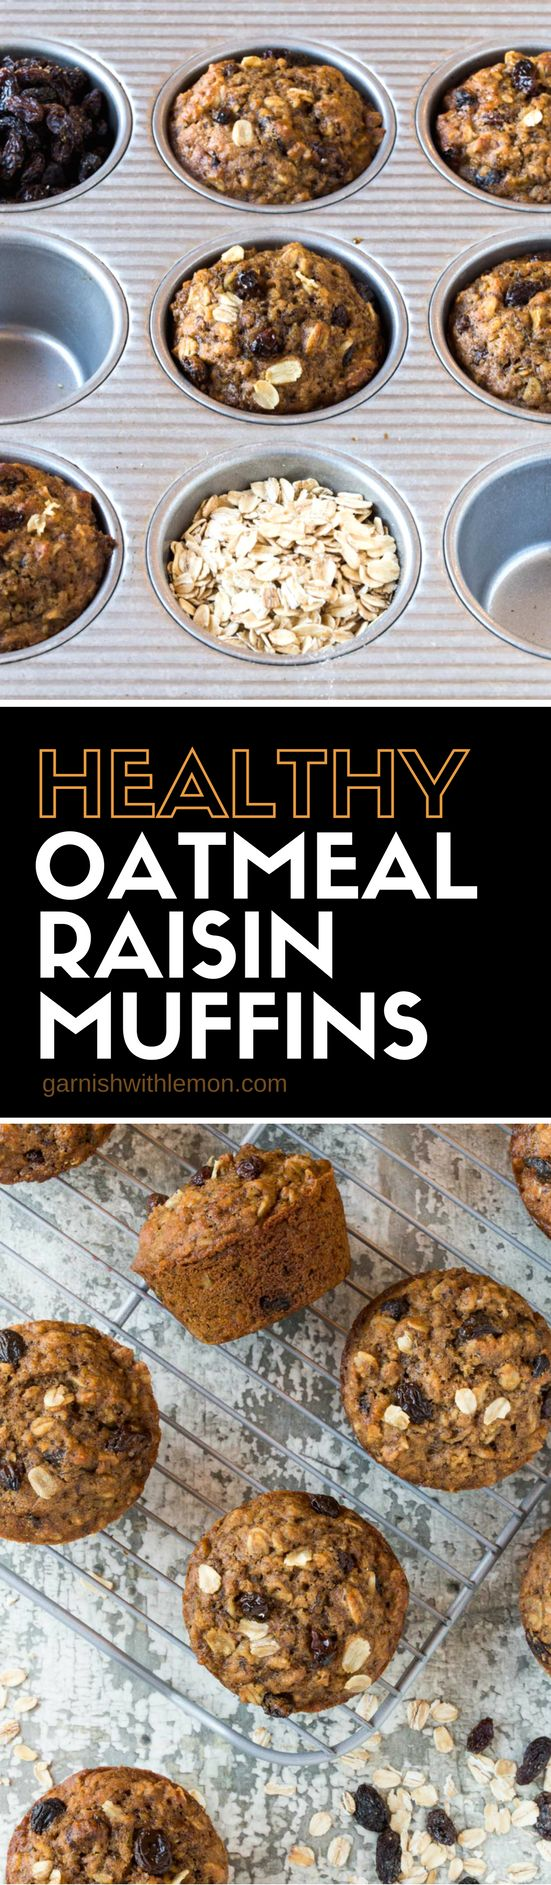 Make these Healthy Oatmeal Raisin Muffins ahead of time and pop them in the freezer. Simply pull one (or the whole batch) out whenever you need them. A great breakfast option for overnight guests!